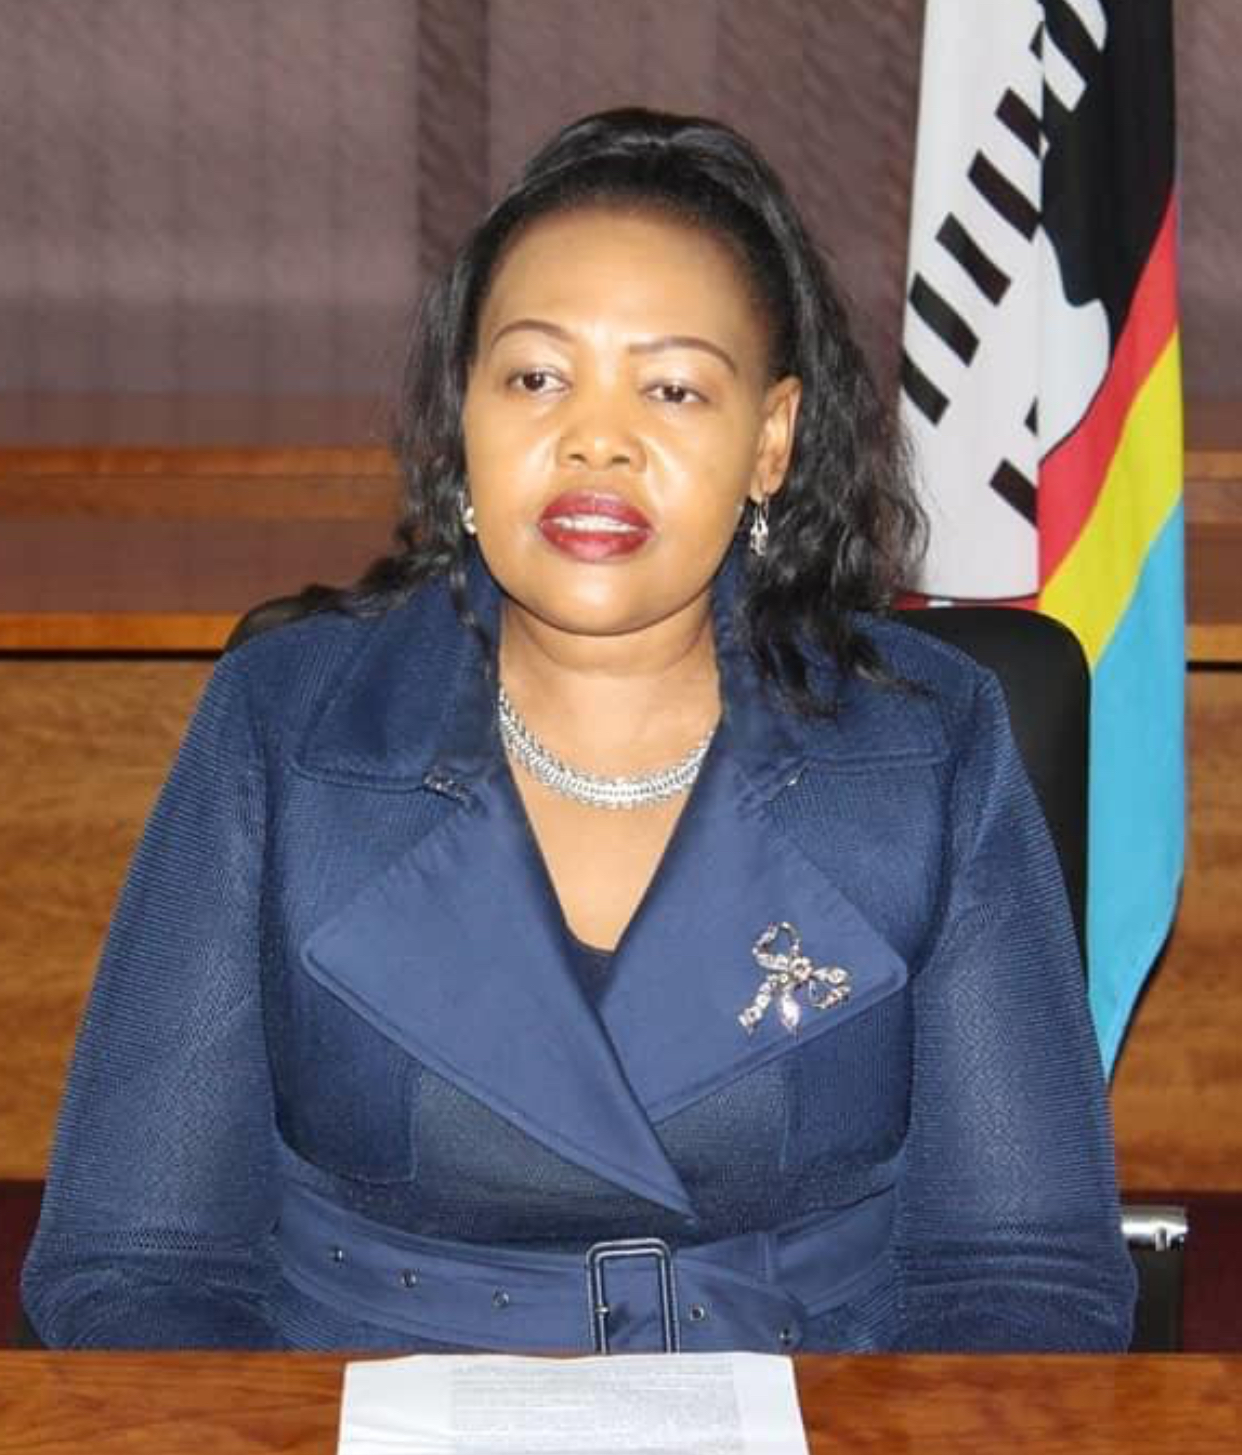 Justice Minister Pholile Shakantu, the drug dealing and money-laundering slay-queen